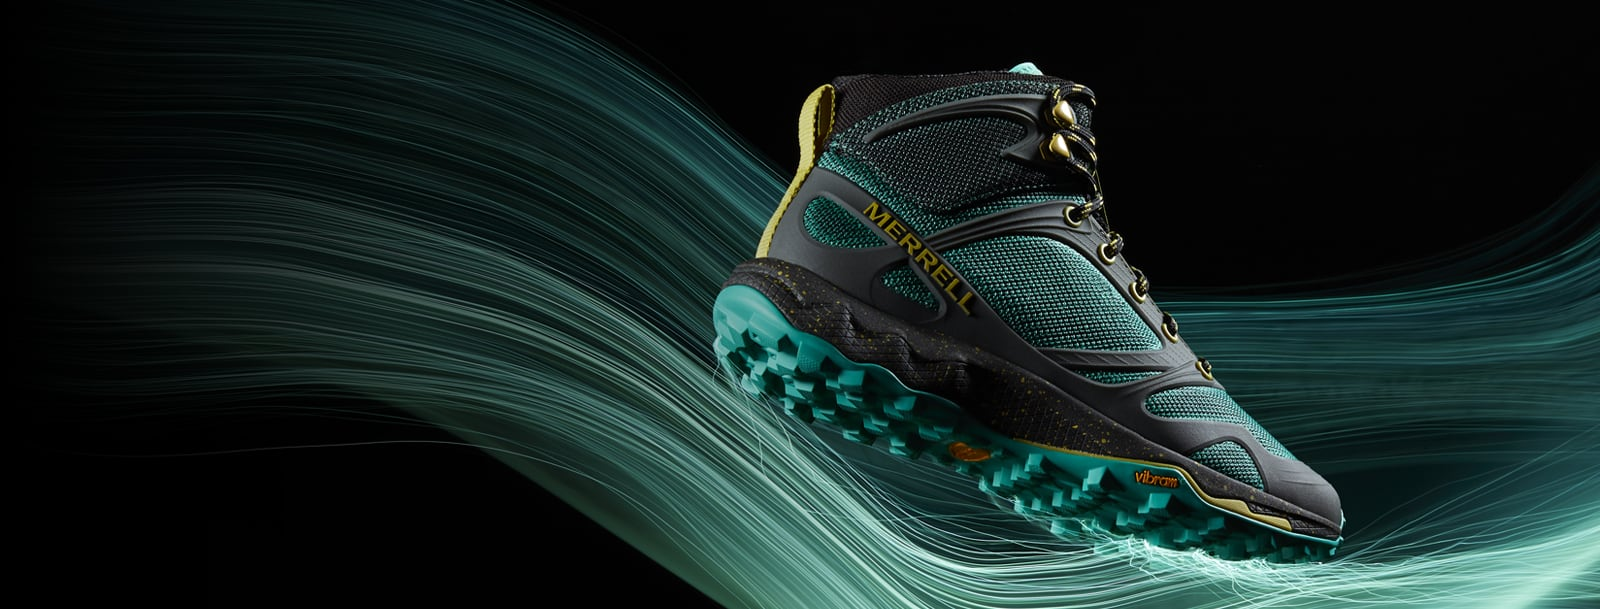 Merrell Altalight Knit shoe over blurred green lines